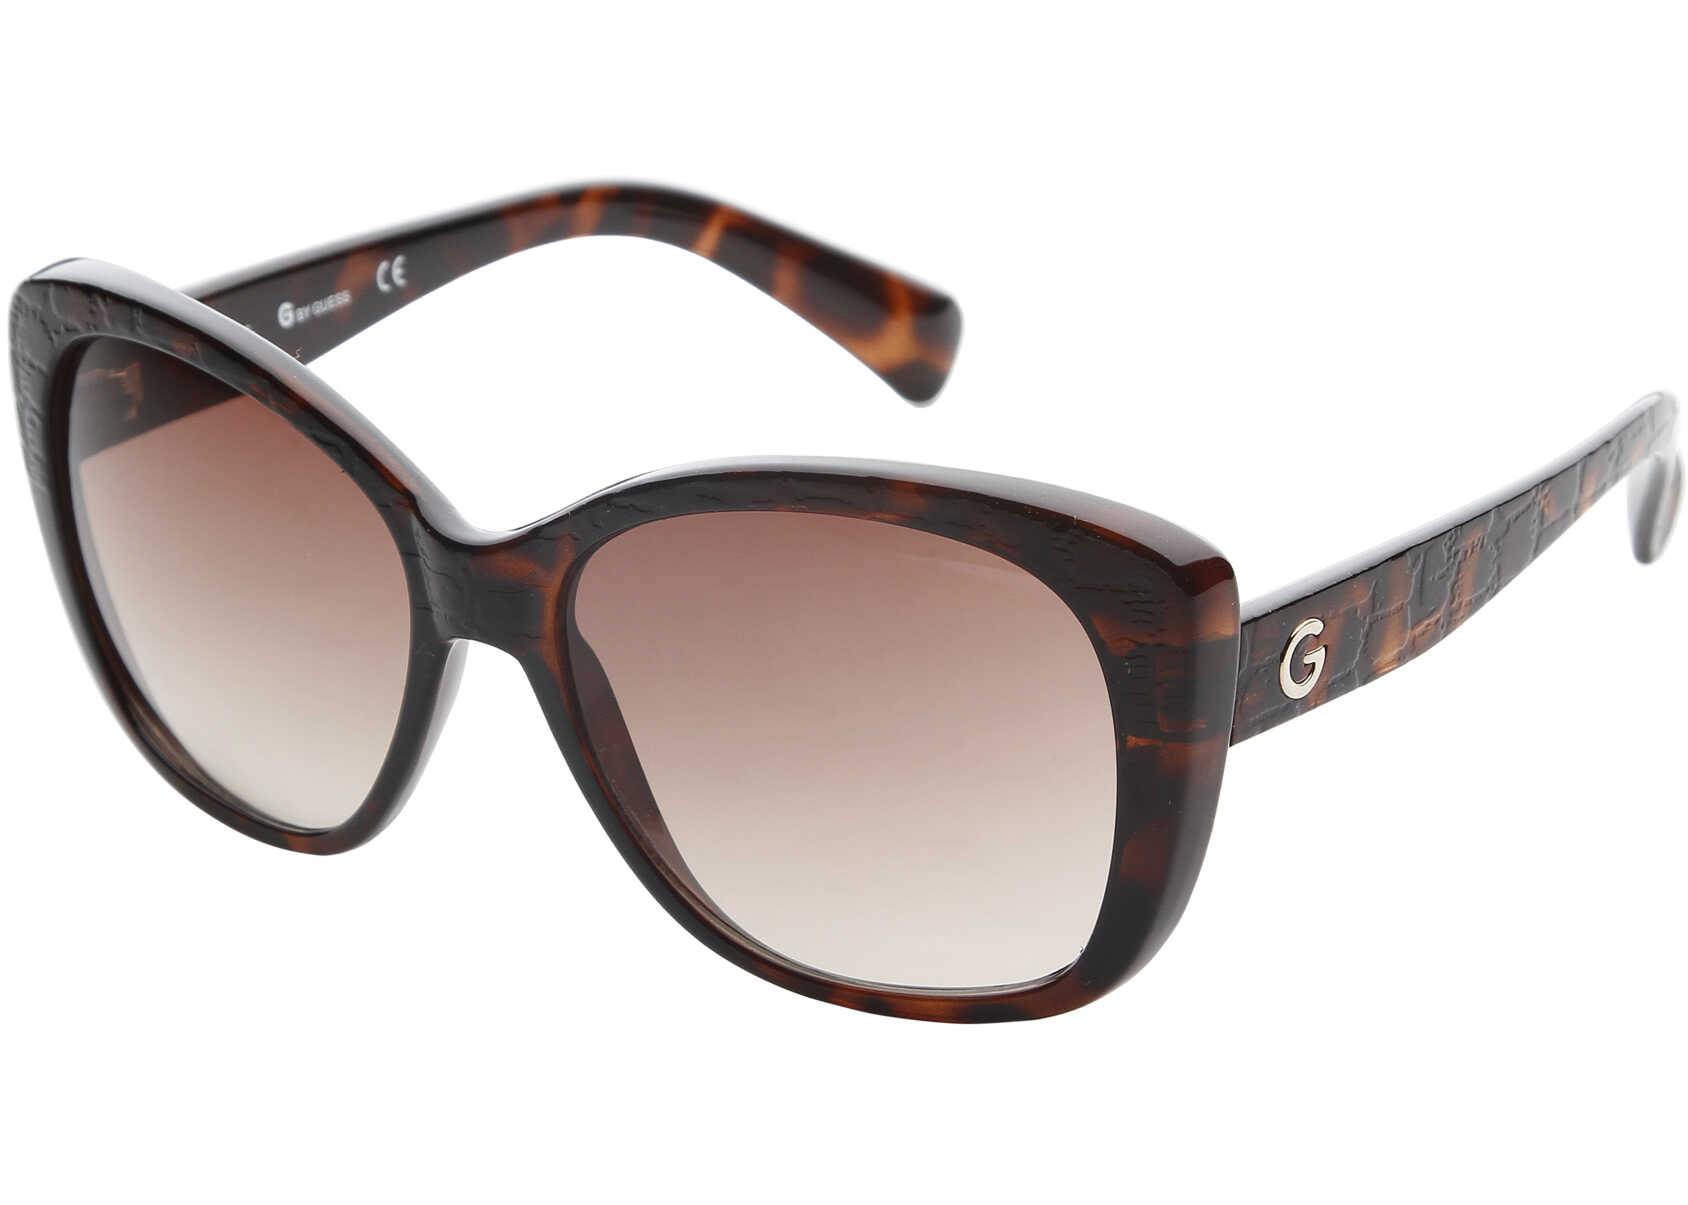 GUESS Gg1123 Brown